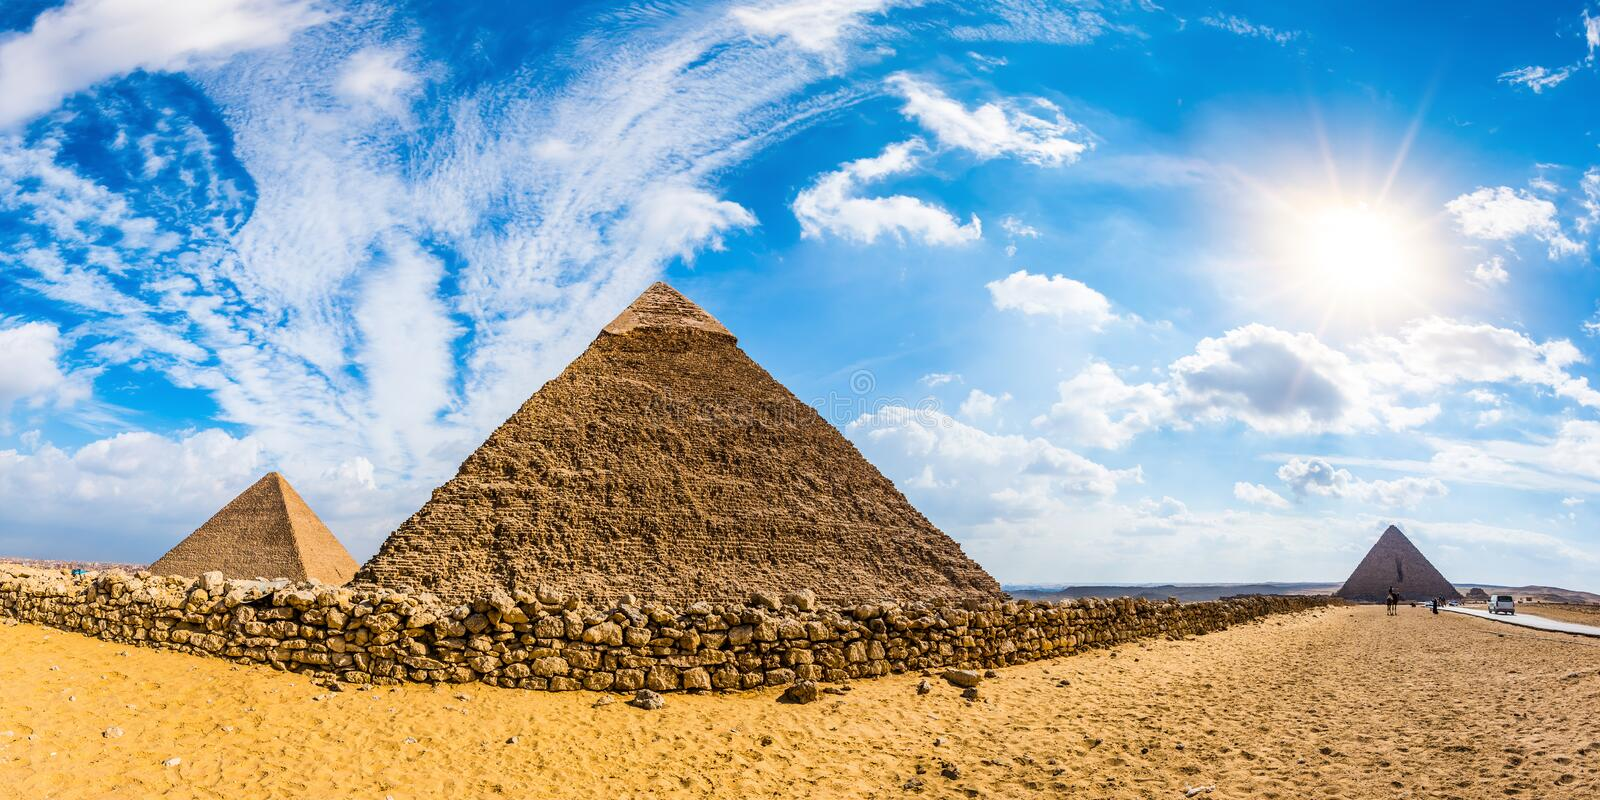 The great pyramids of Giza, Egypt. Panorama of the area with the great pyramids of Giza, Egypt royalty free stock photography